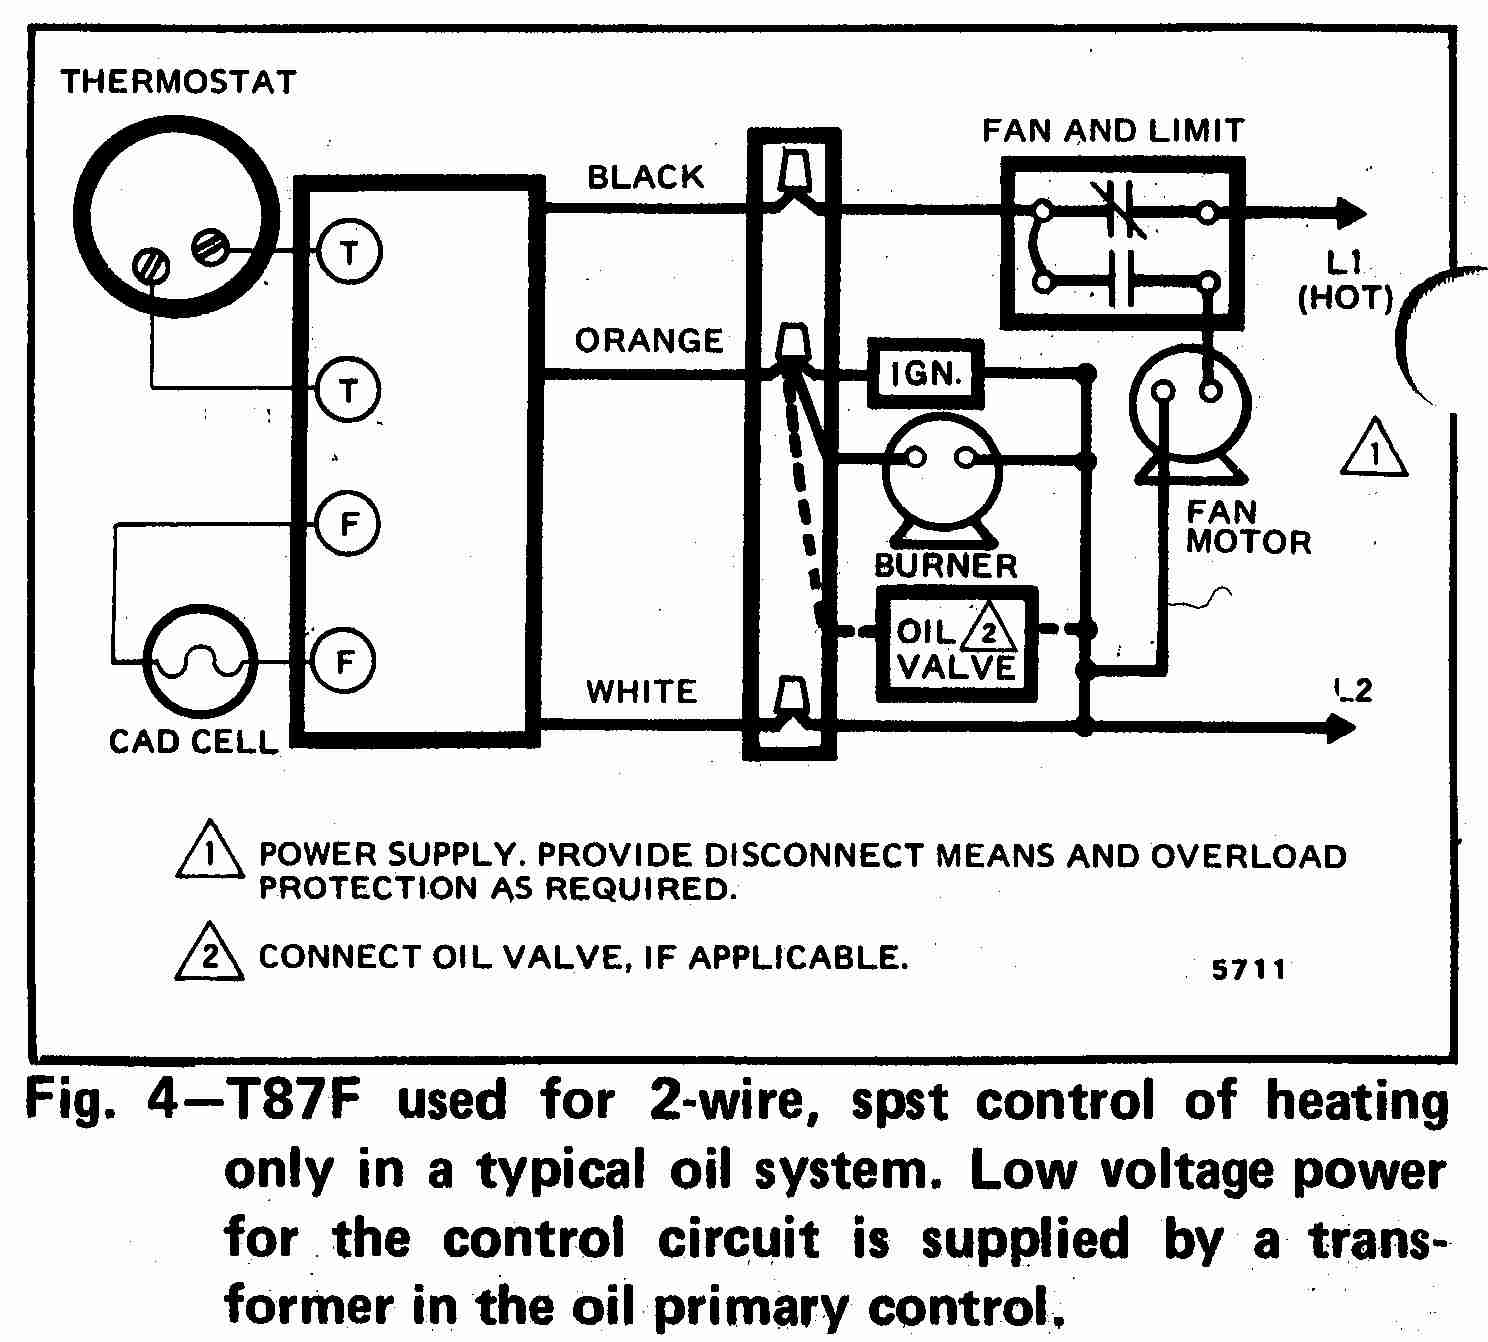 TT_T87F_0002_2W_DJF hvac control wiring diagram hvac compressor wiring diagram \u2022 free honeywell pressure switch wiring diagram at n-0.co